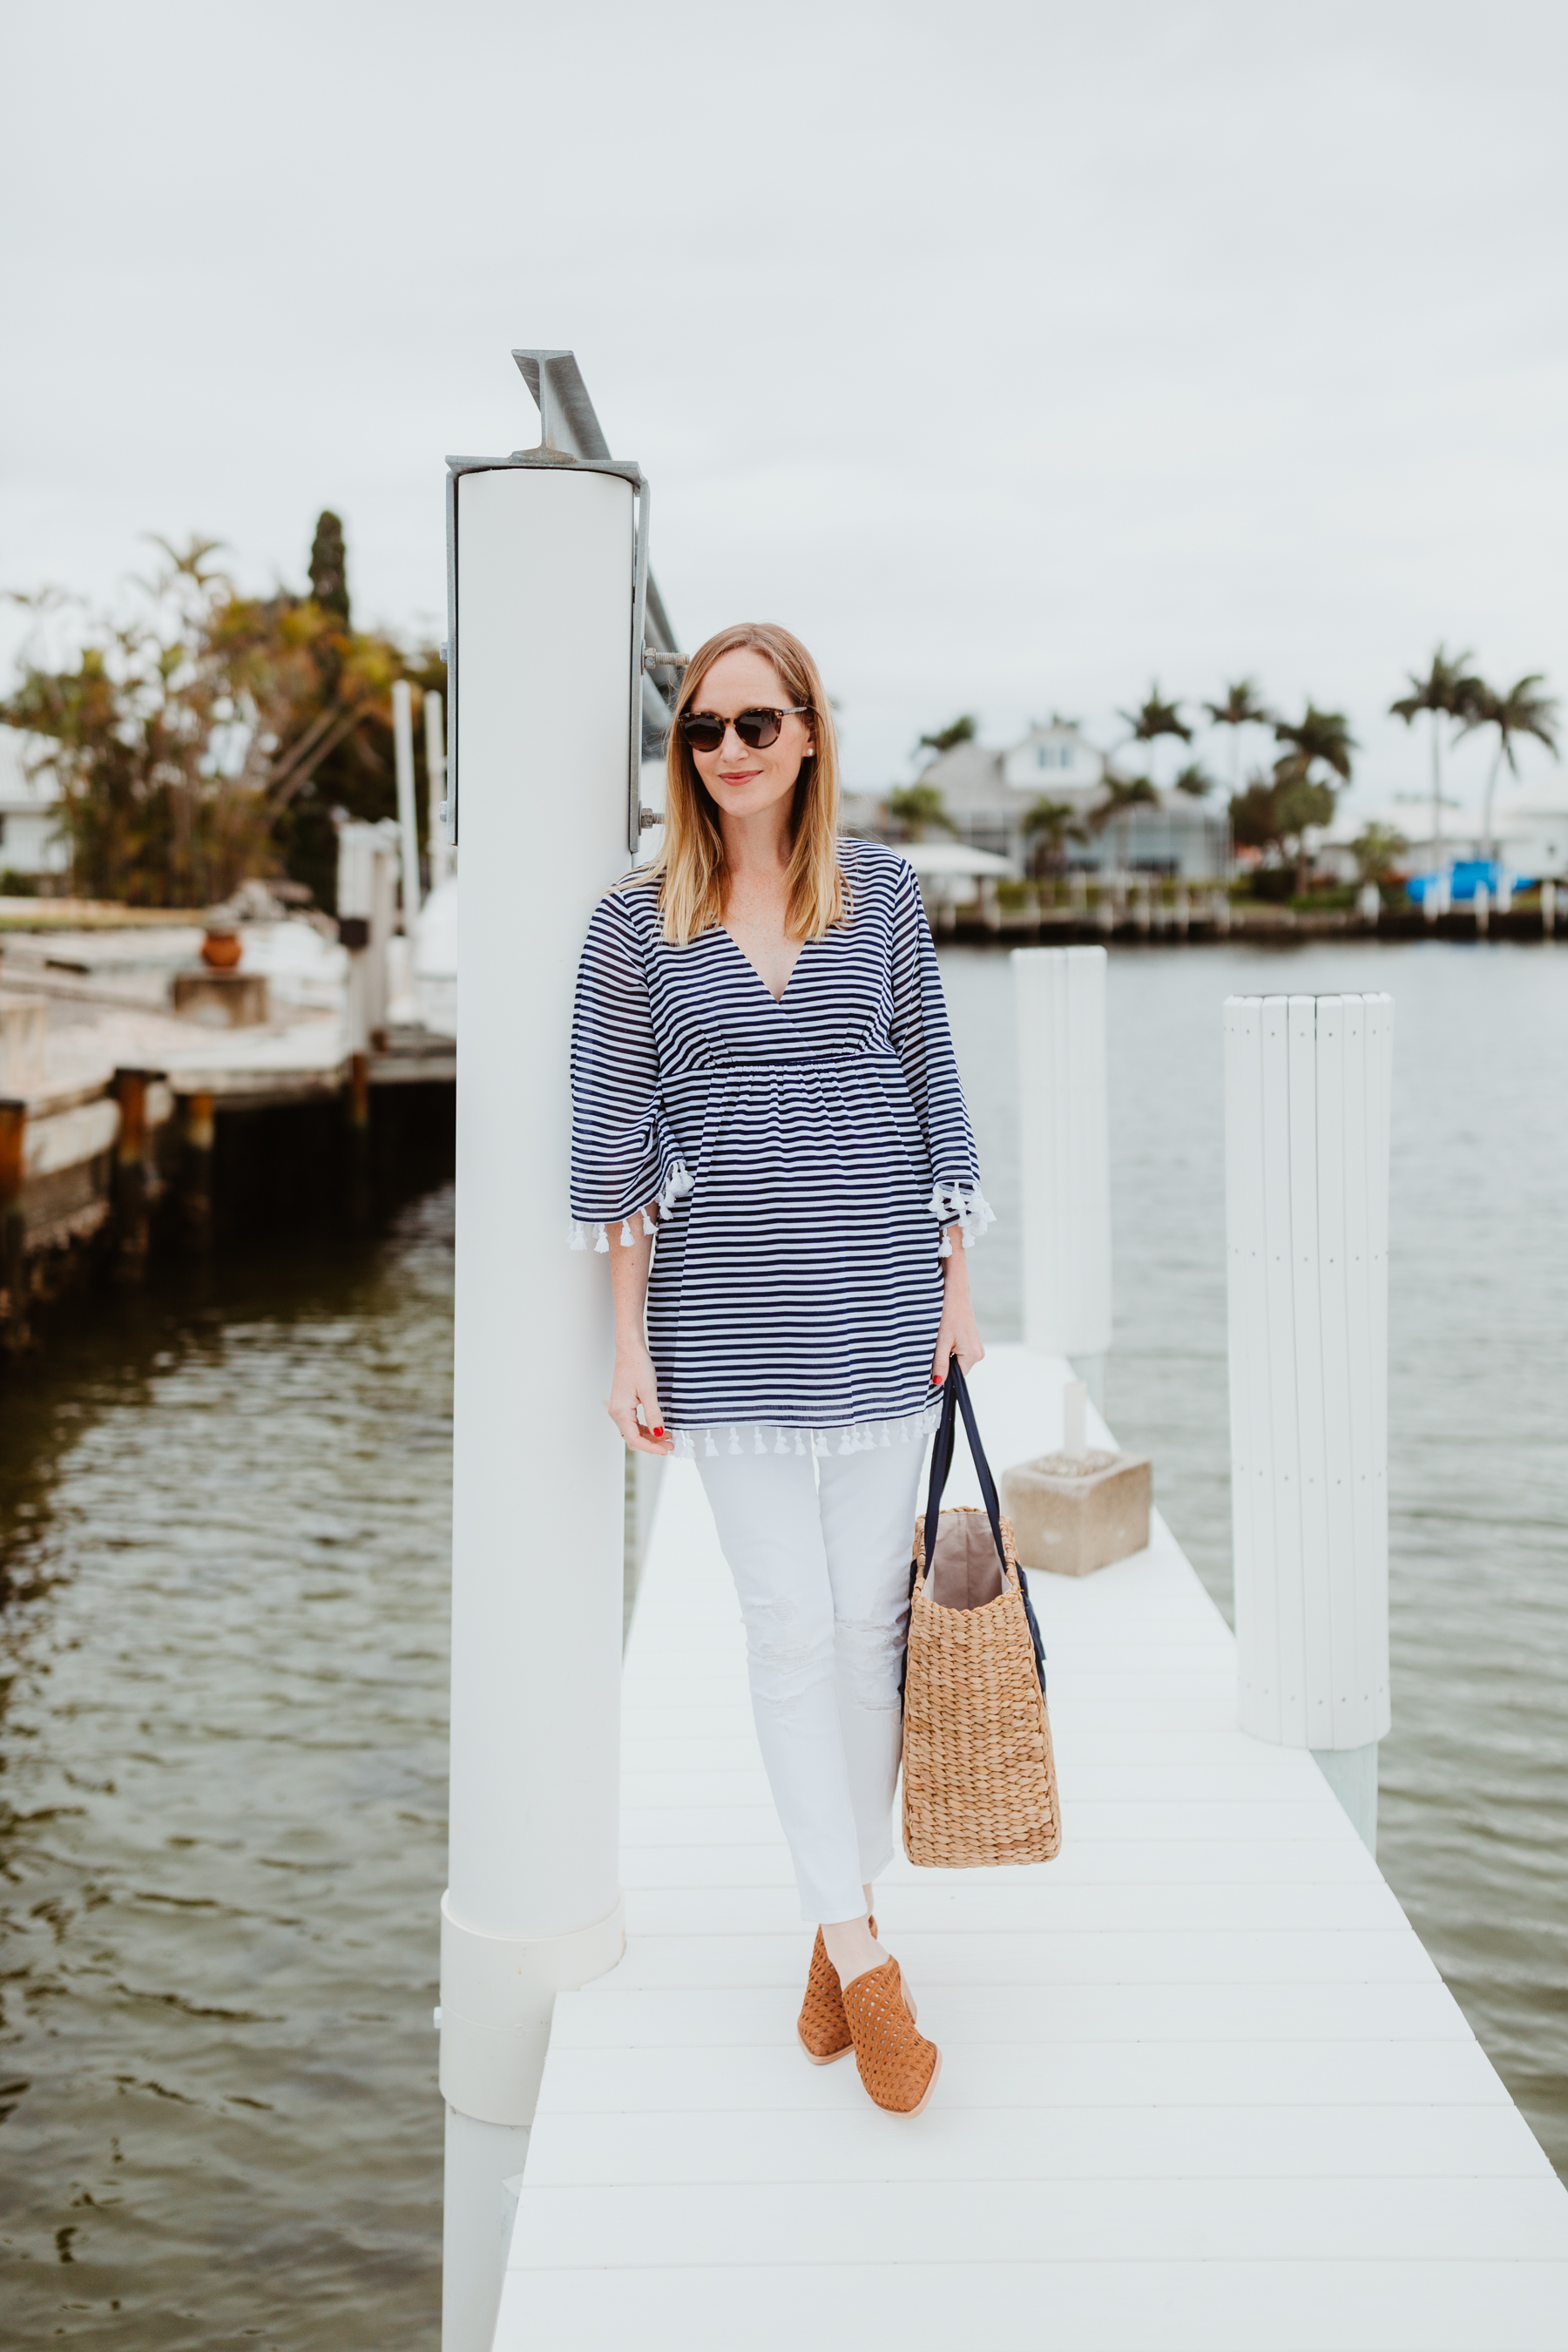 Sail to Sable Crinkle Cotton Tunic Top & White Jeans & Pamela Munson Woven Tote & Mule